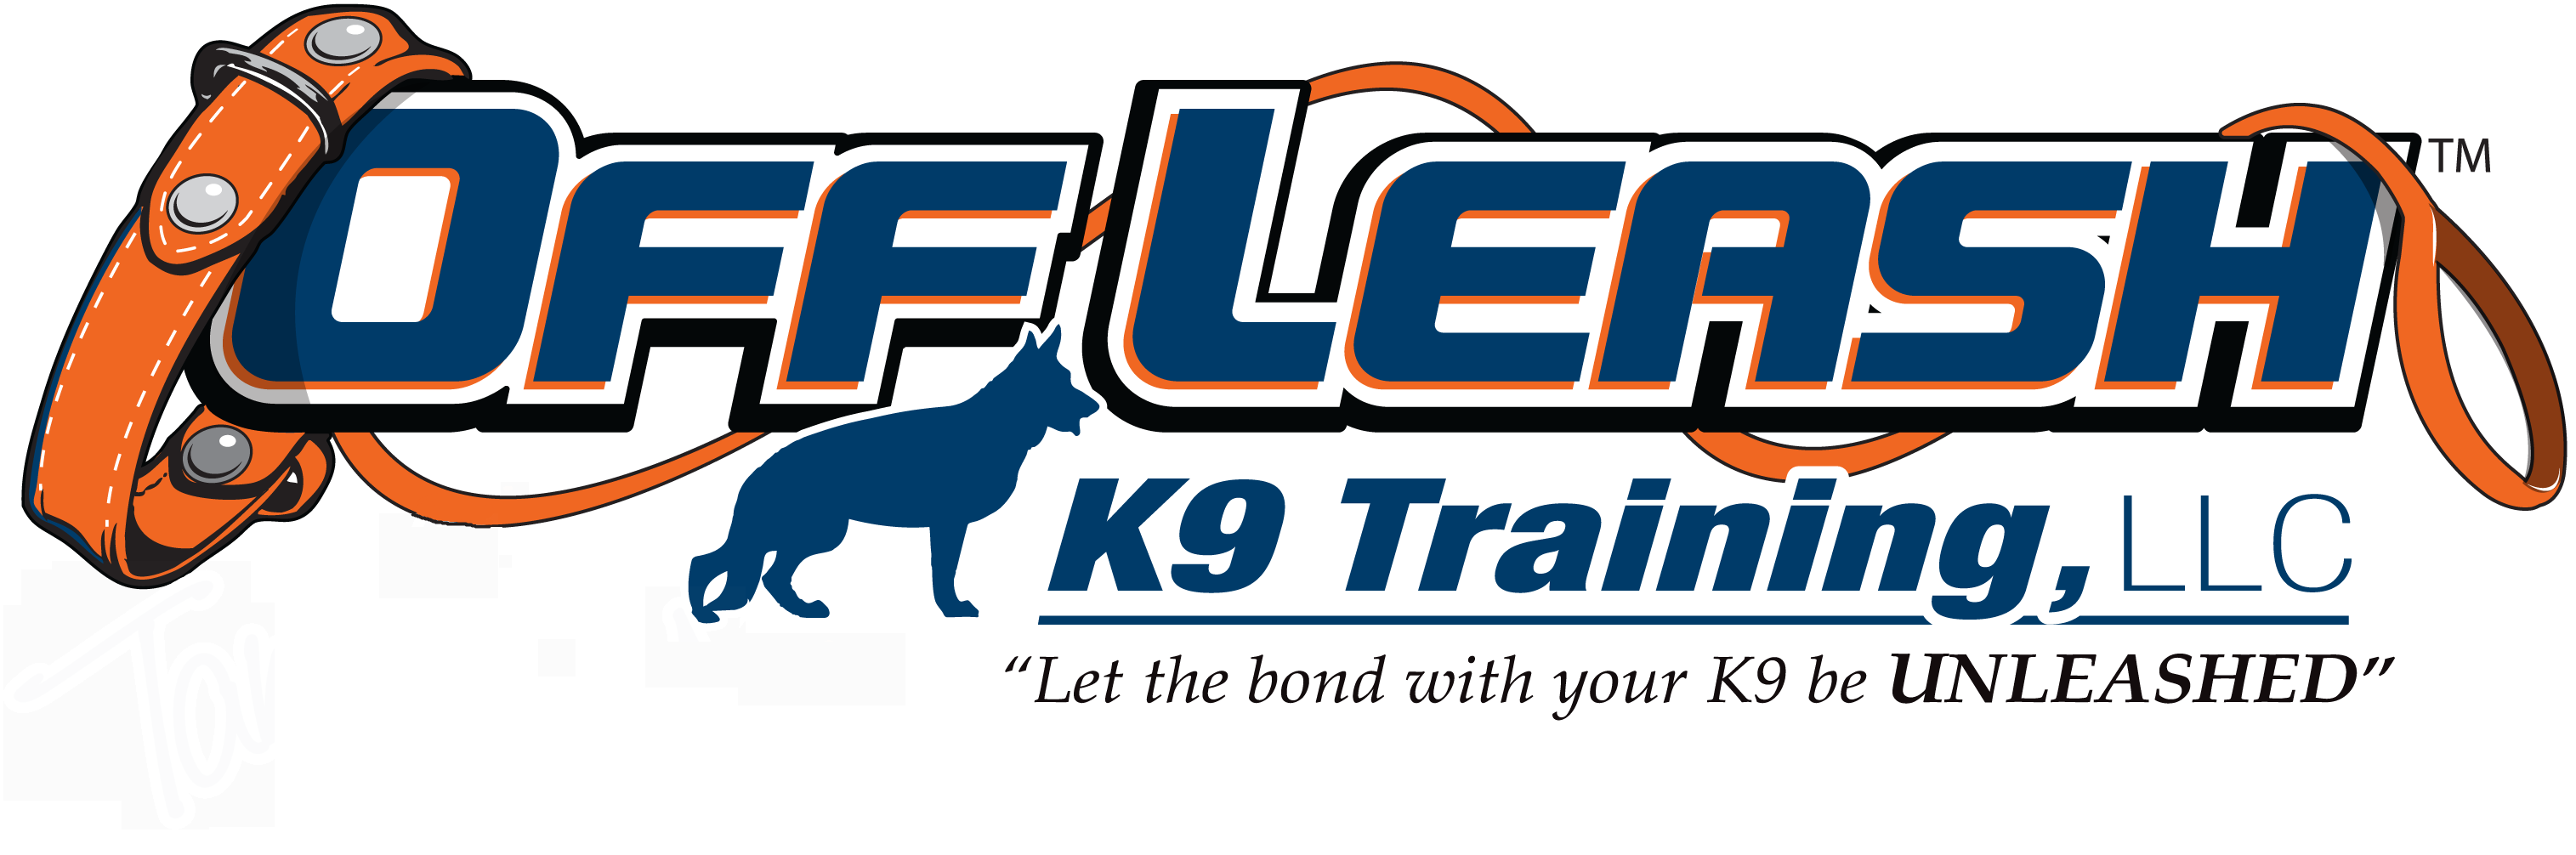 Springfield Offleash K9 Dog Training